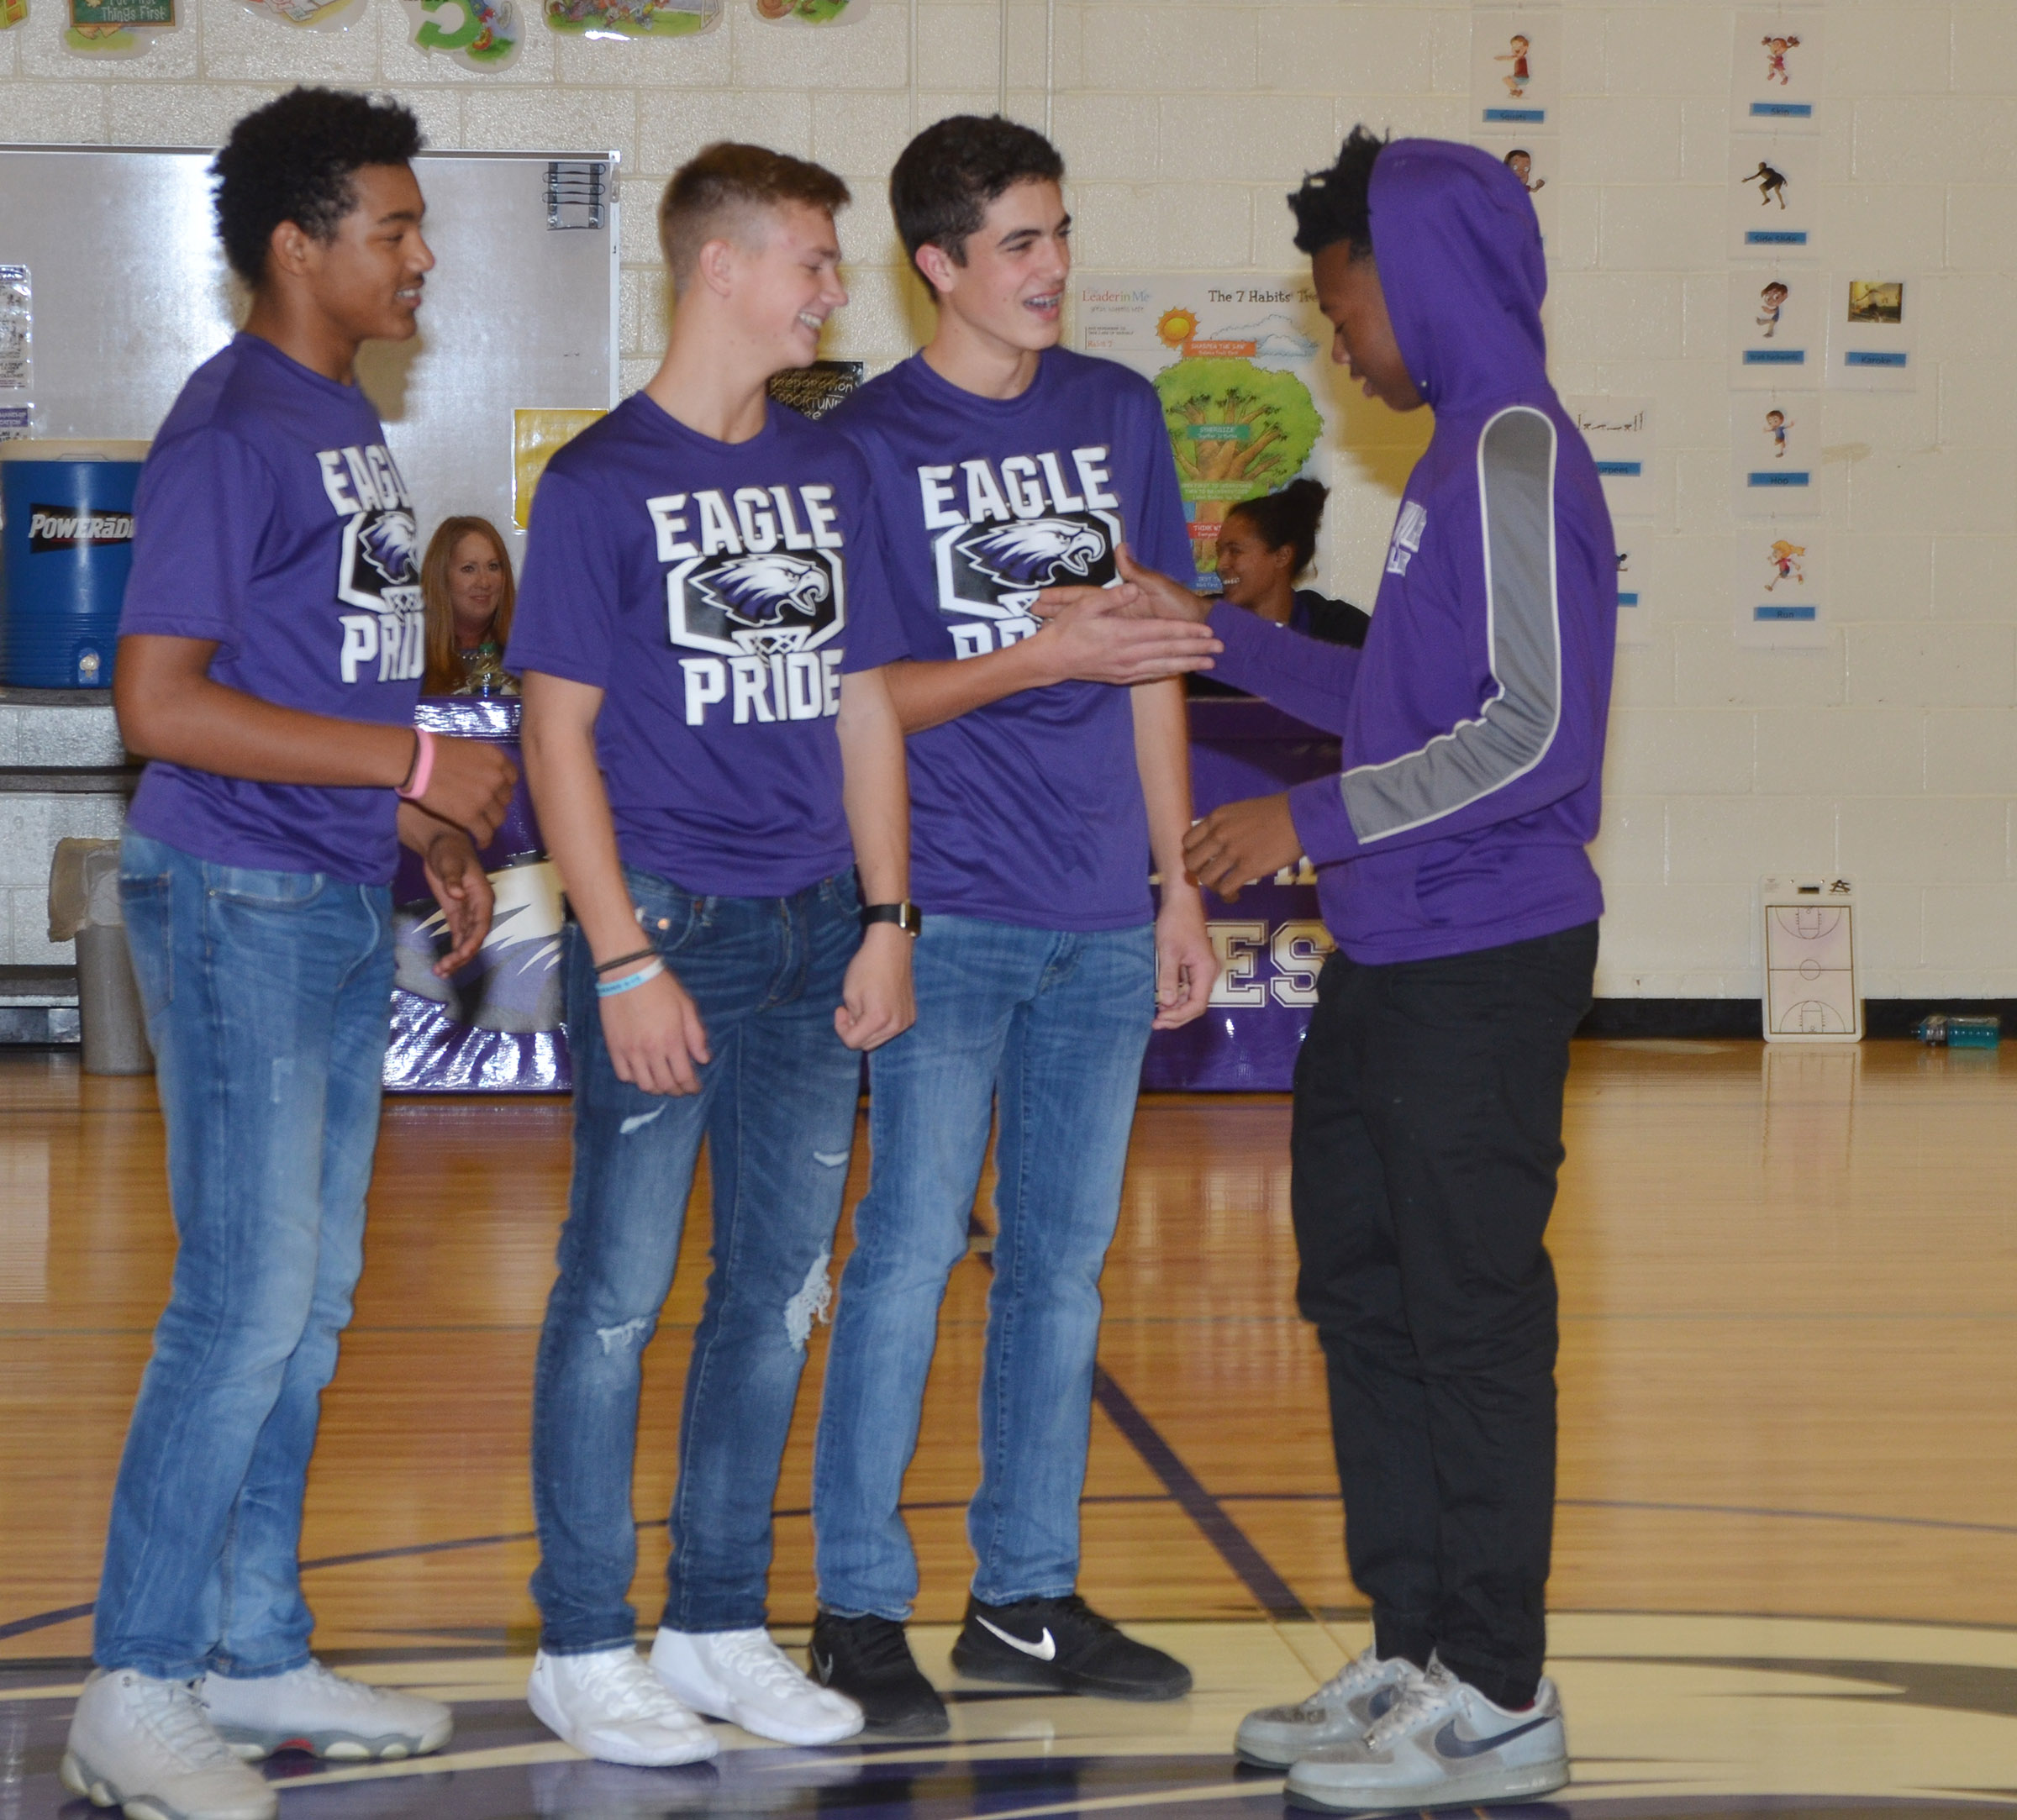 From left, Campbellsville High School freshmen Reggie Thomas, Blase Wheatley, Kameron Smith and Sae'von Buckner are honored for being a part of the CMS undefeated 2016-2017 boys' basketball team that won the CKMSAC regular season and tournament championships.